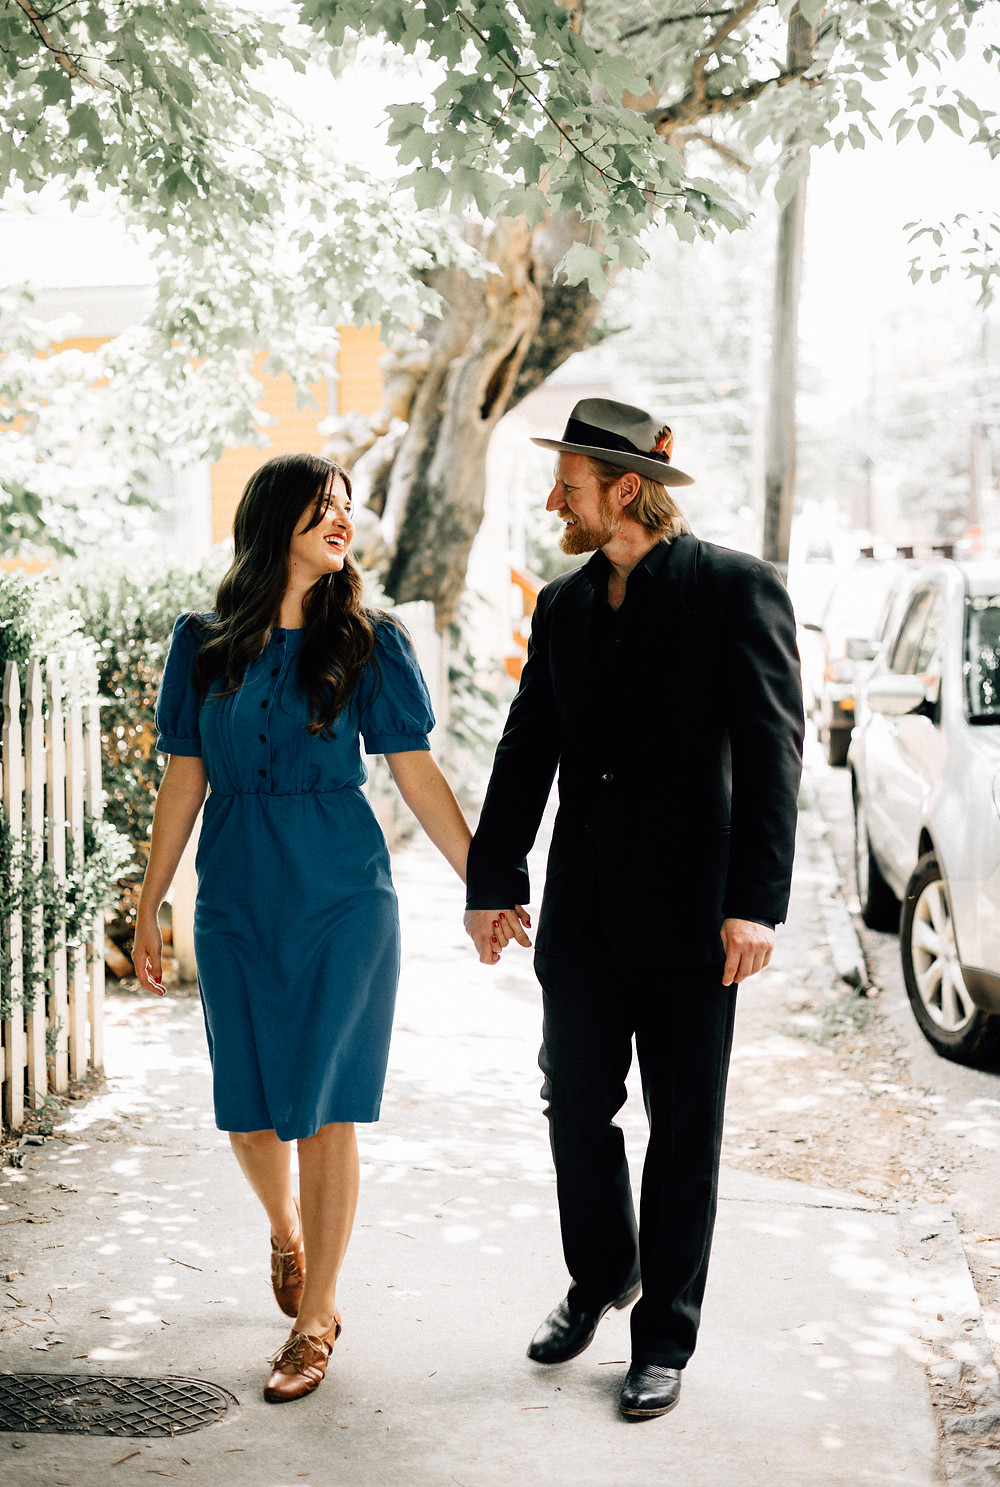 Authentic engagement pictures